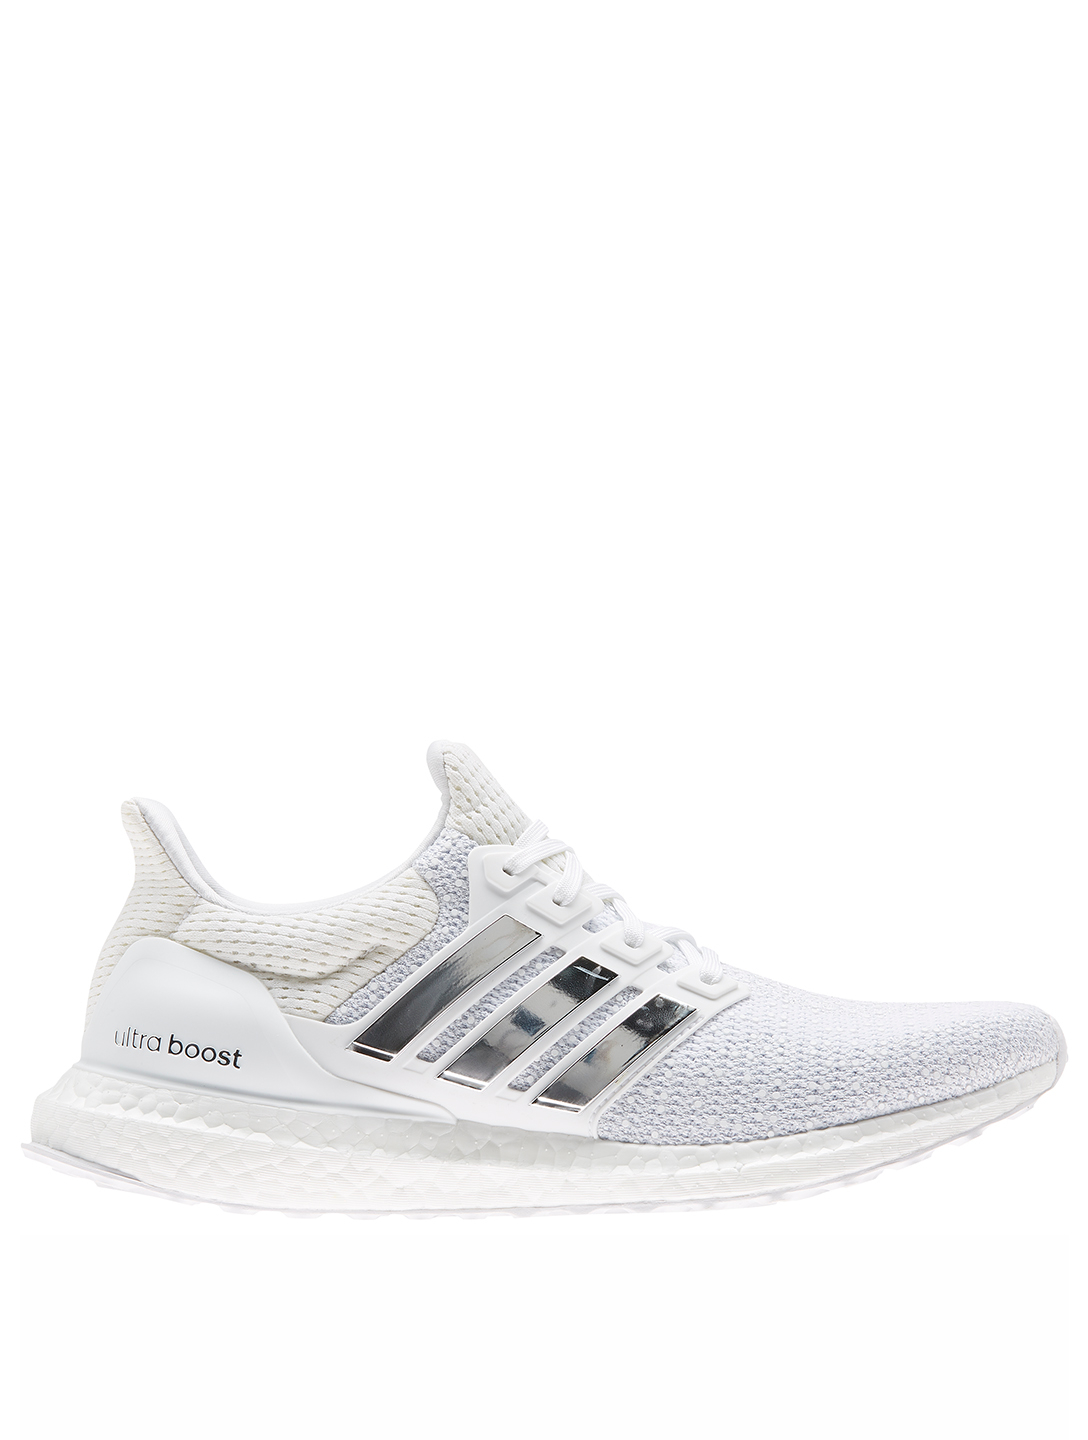 ADIDAS Ultraboost DNA Primeknit Running Shoes Men's White